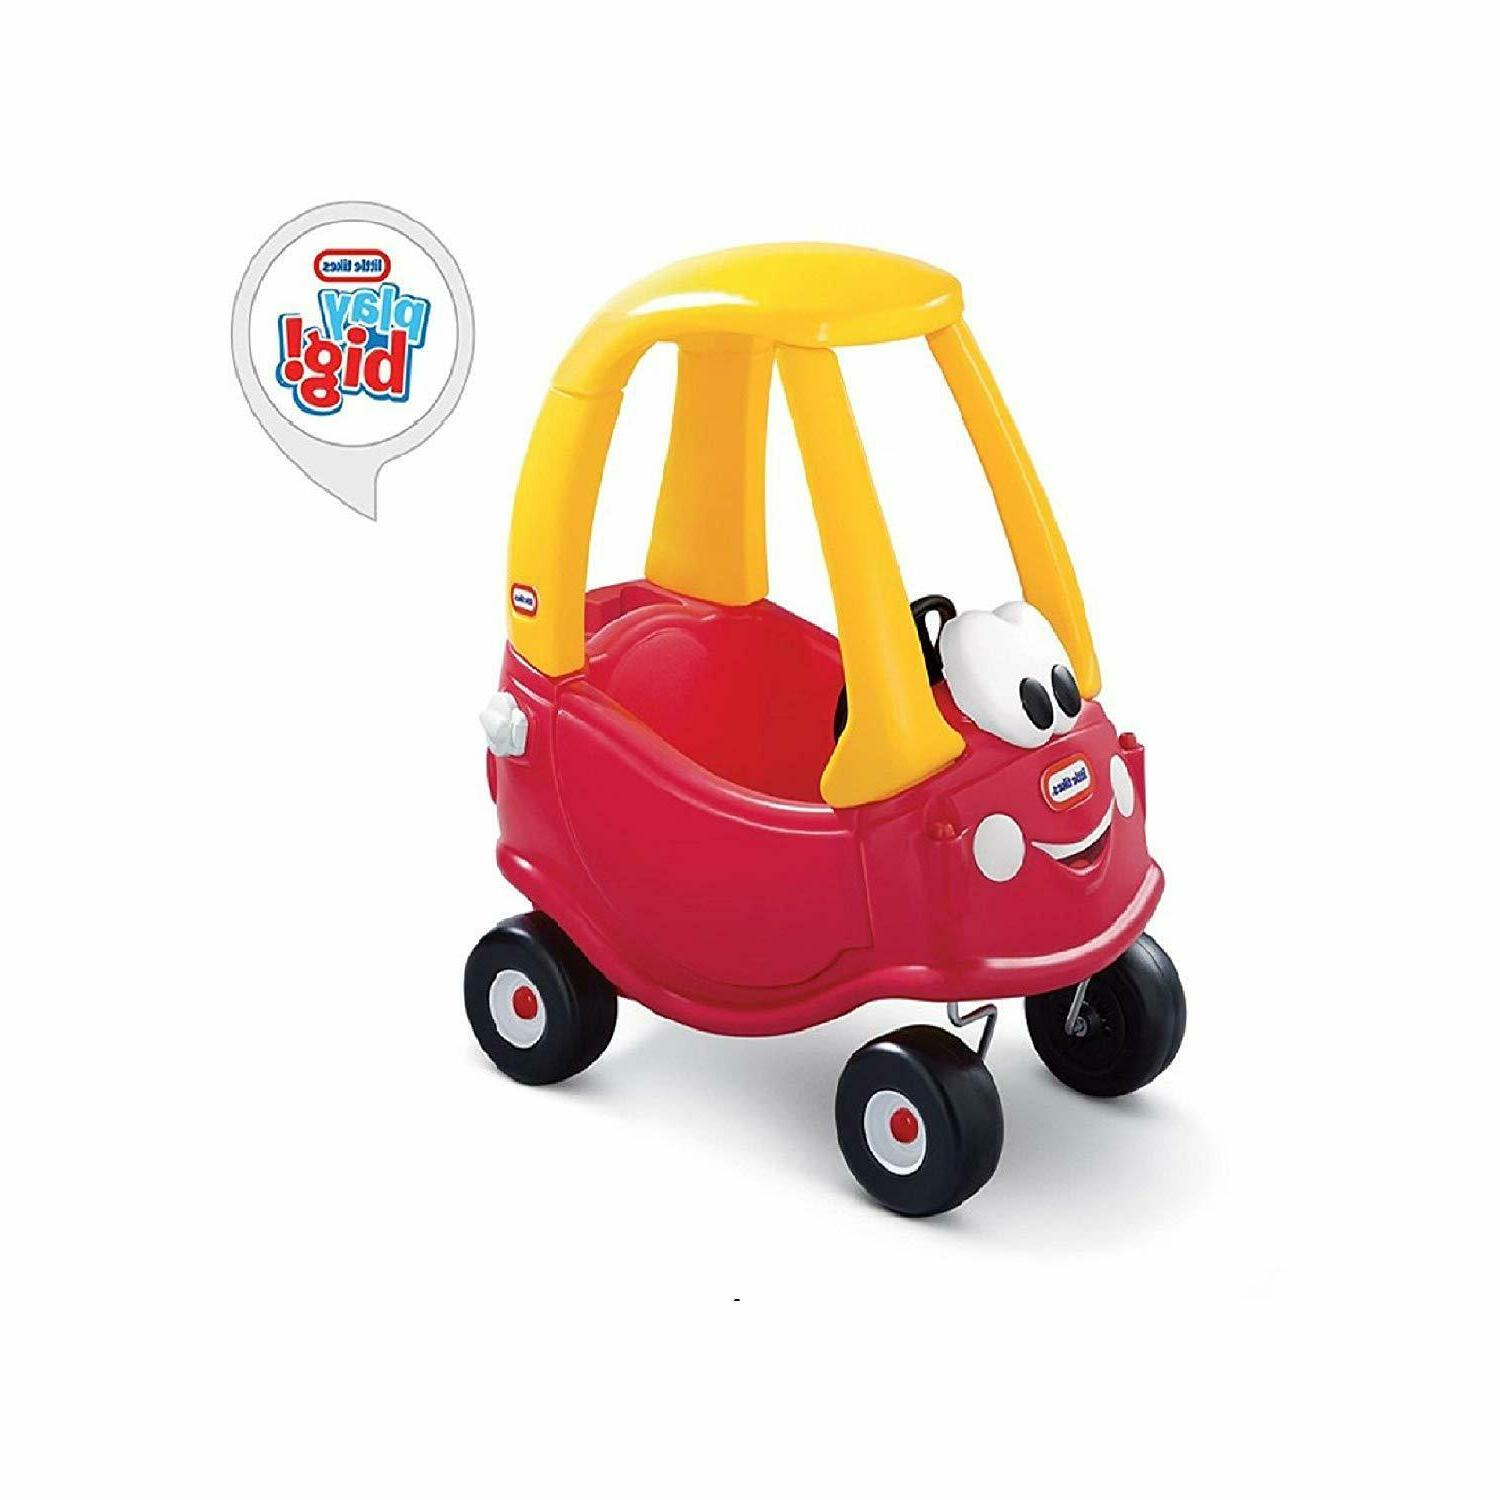 cozy coupe 30th anniversary car ride on